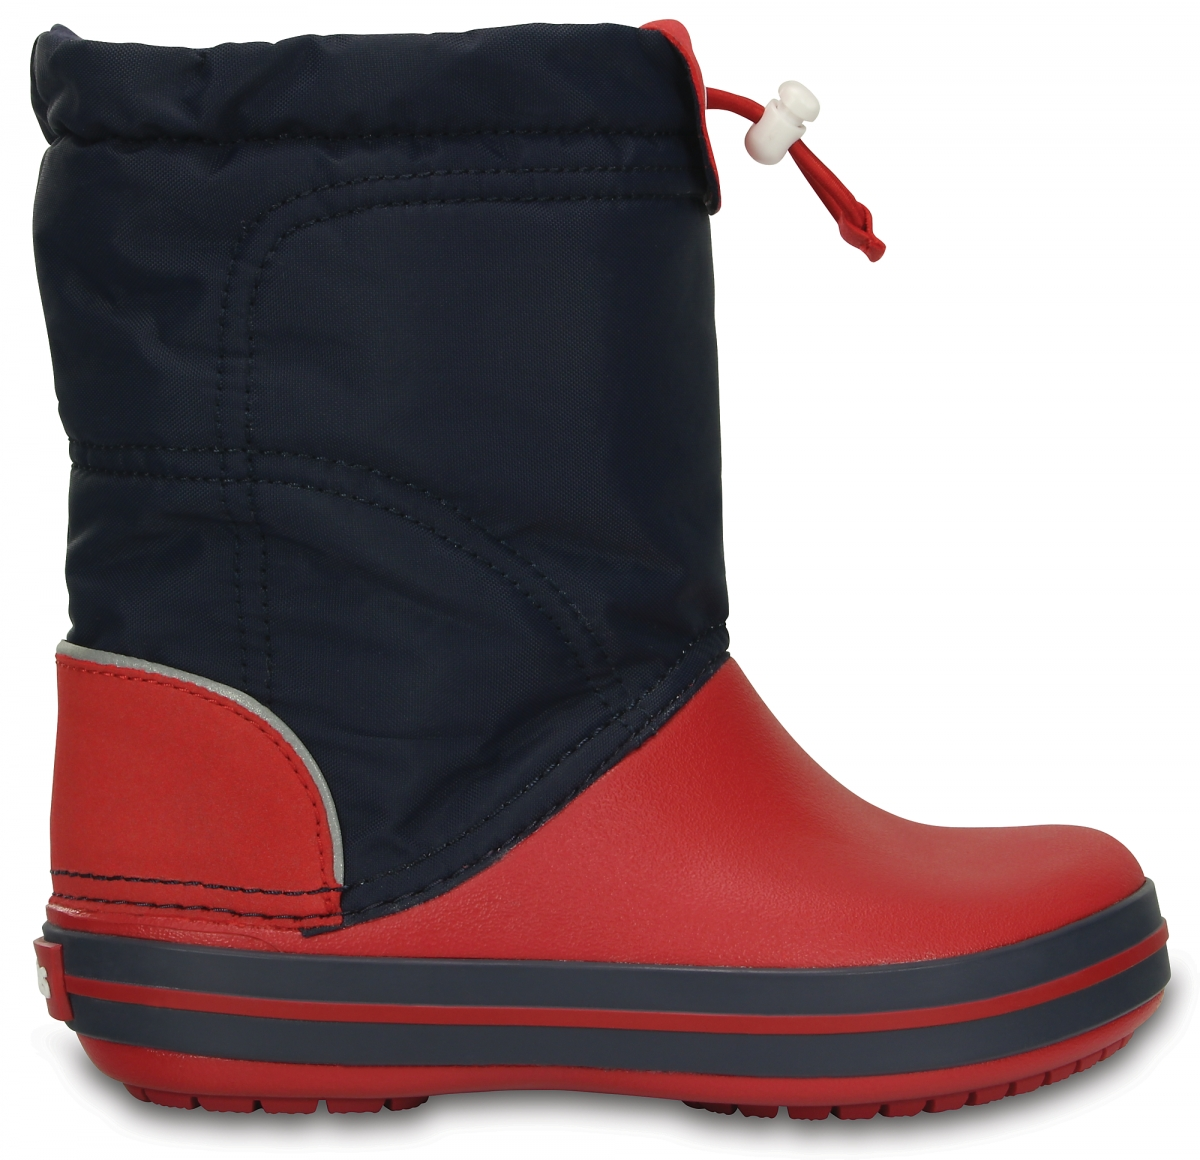 Crocs Crocband LodgePoint Boot Kids - Navy/Red, C10 (27-28)